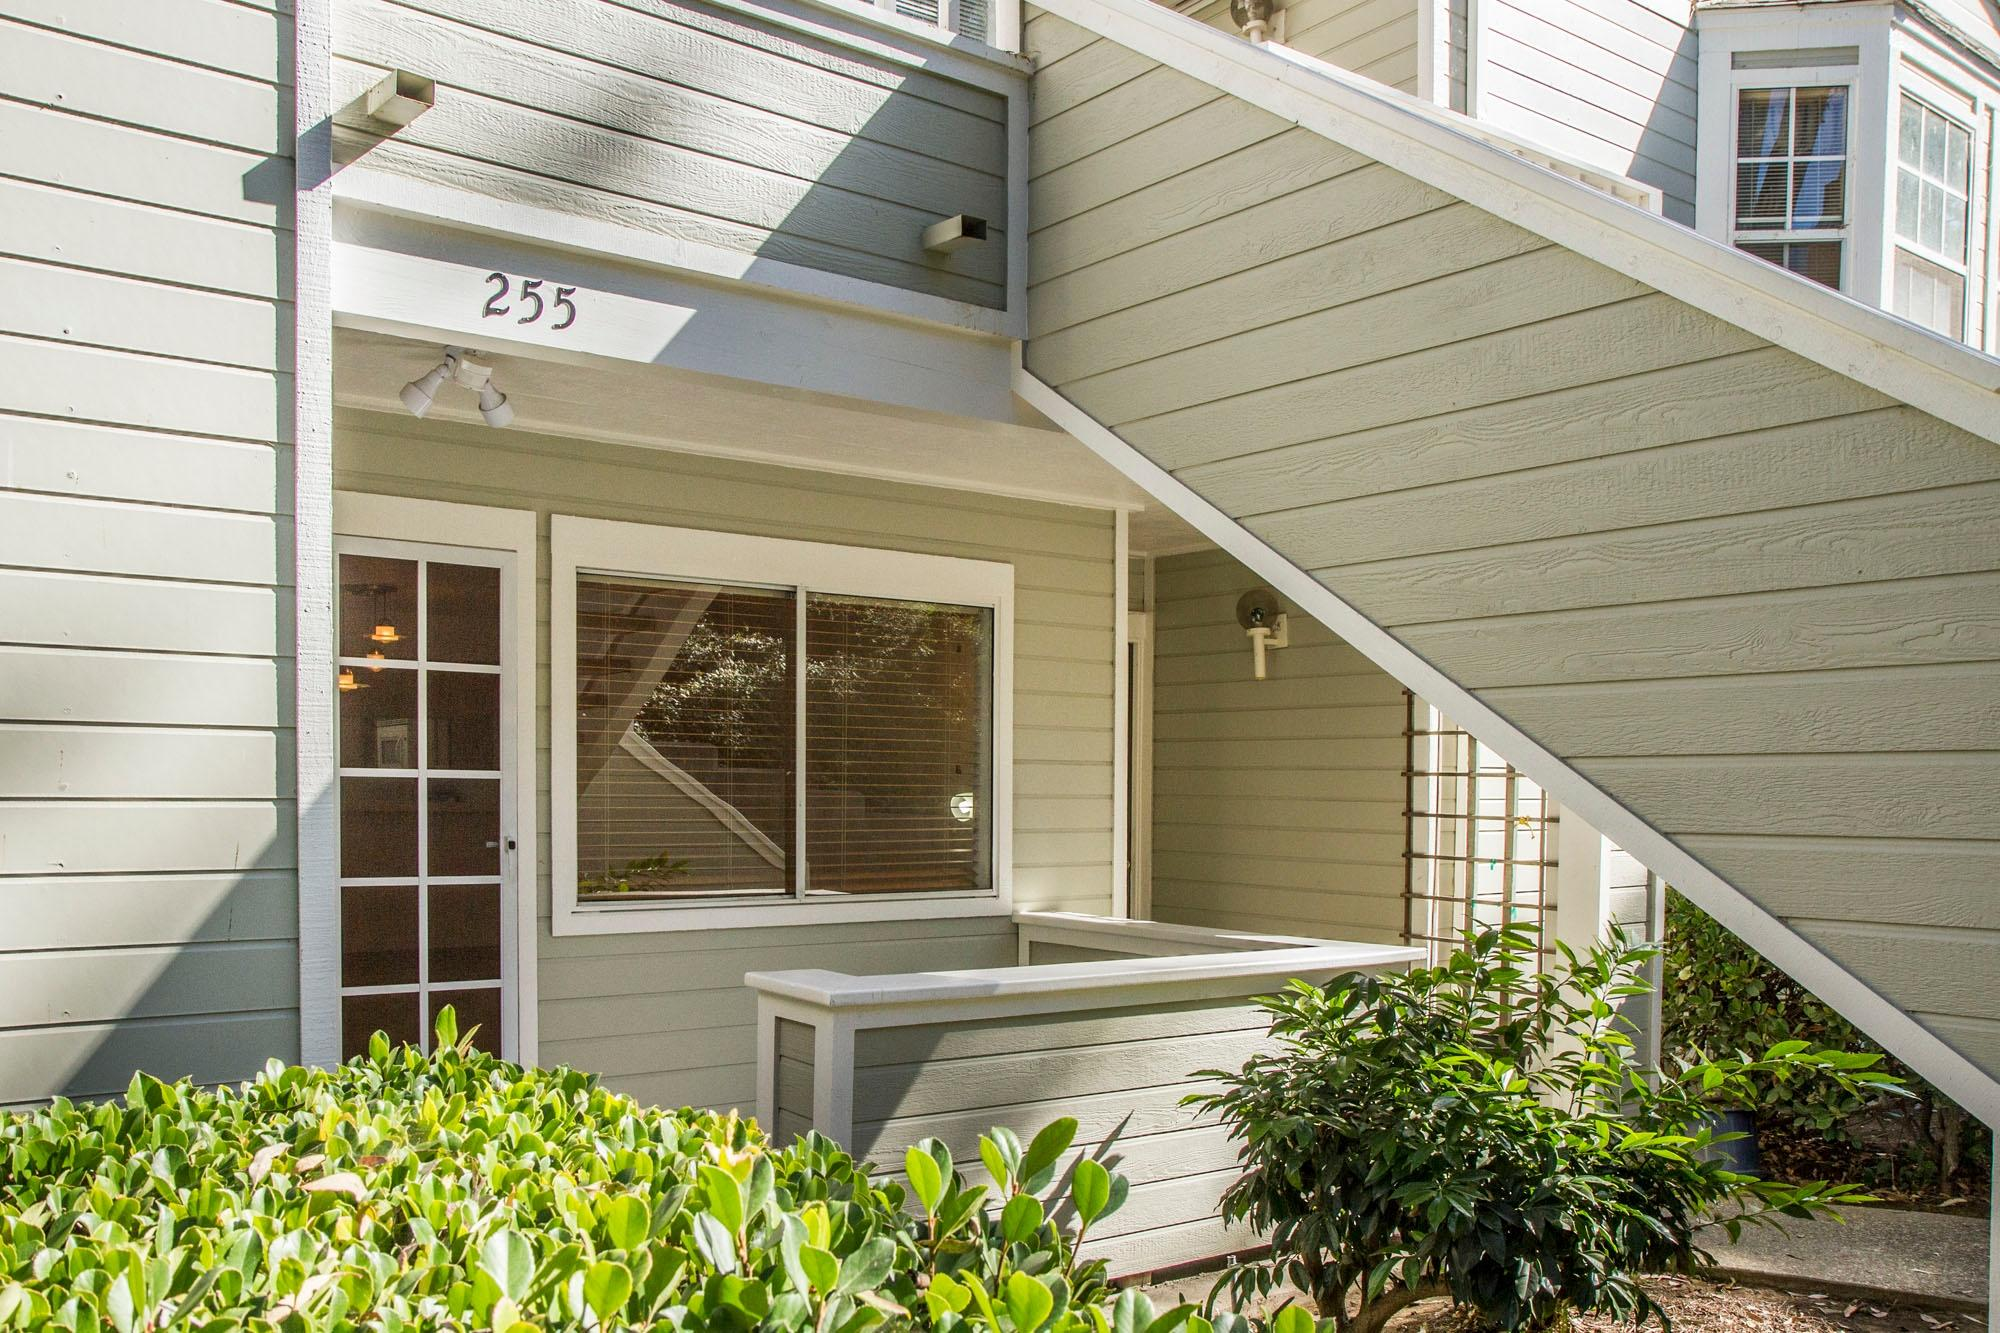 Property photo for 7634 Hollister Ave #255 Goleta, California 93117 - 13-3496